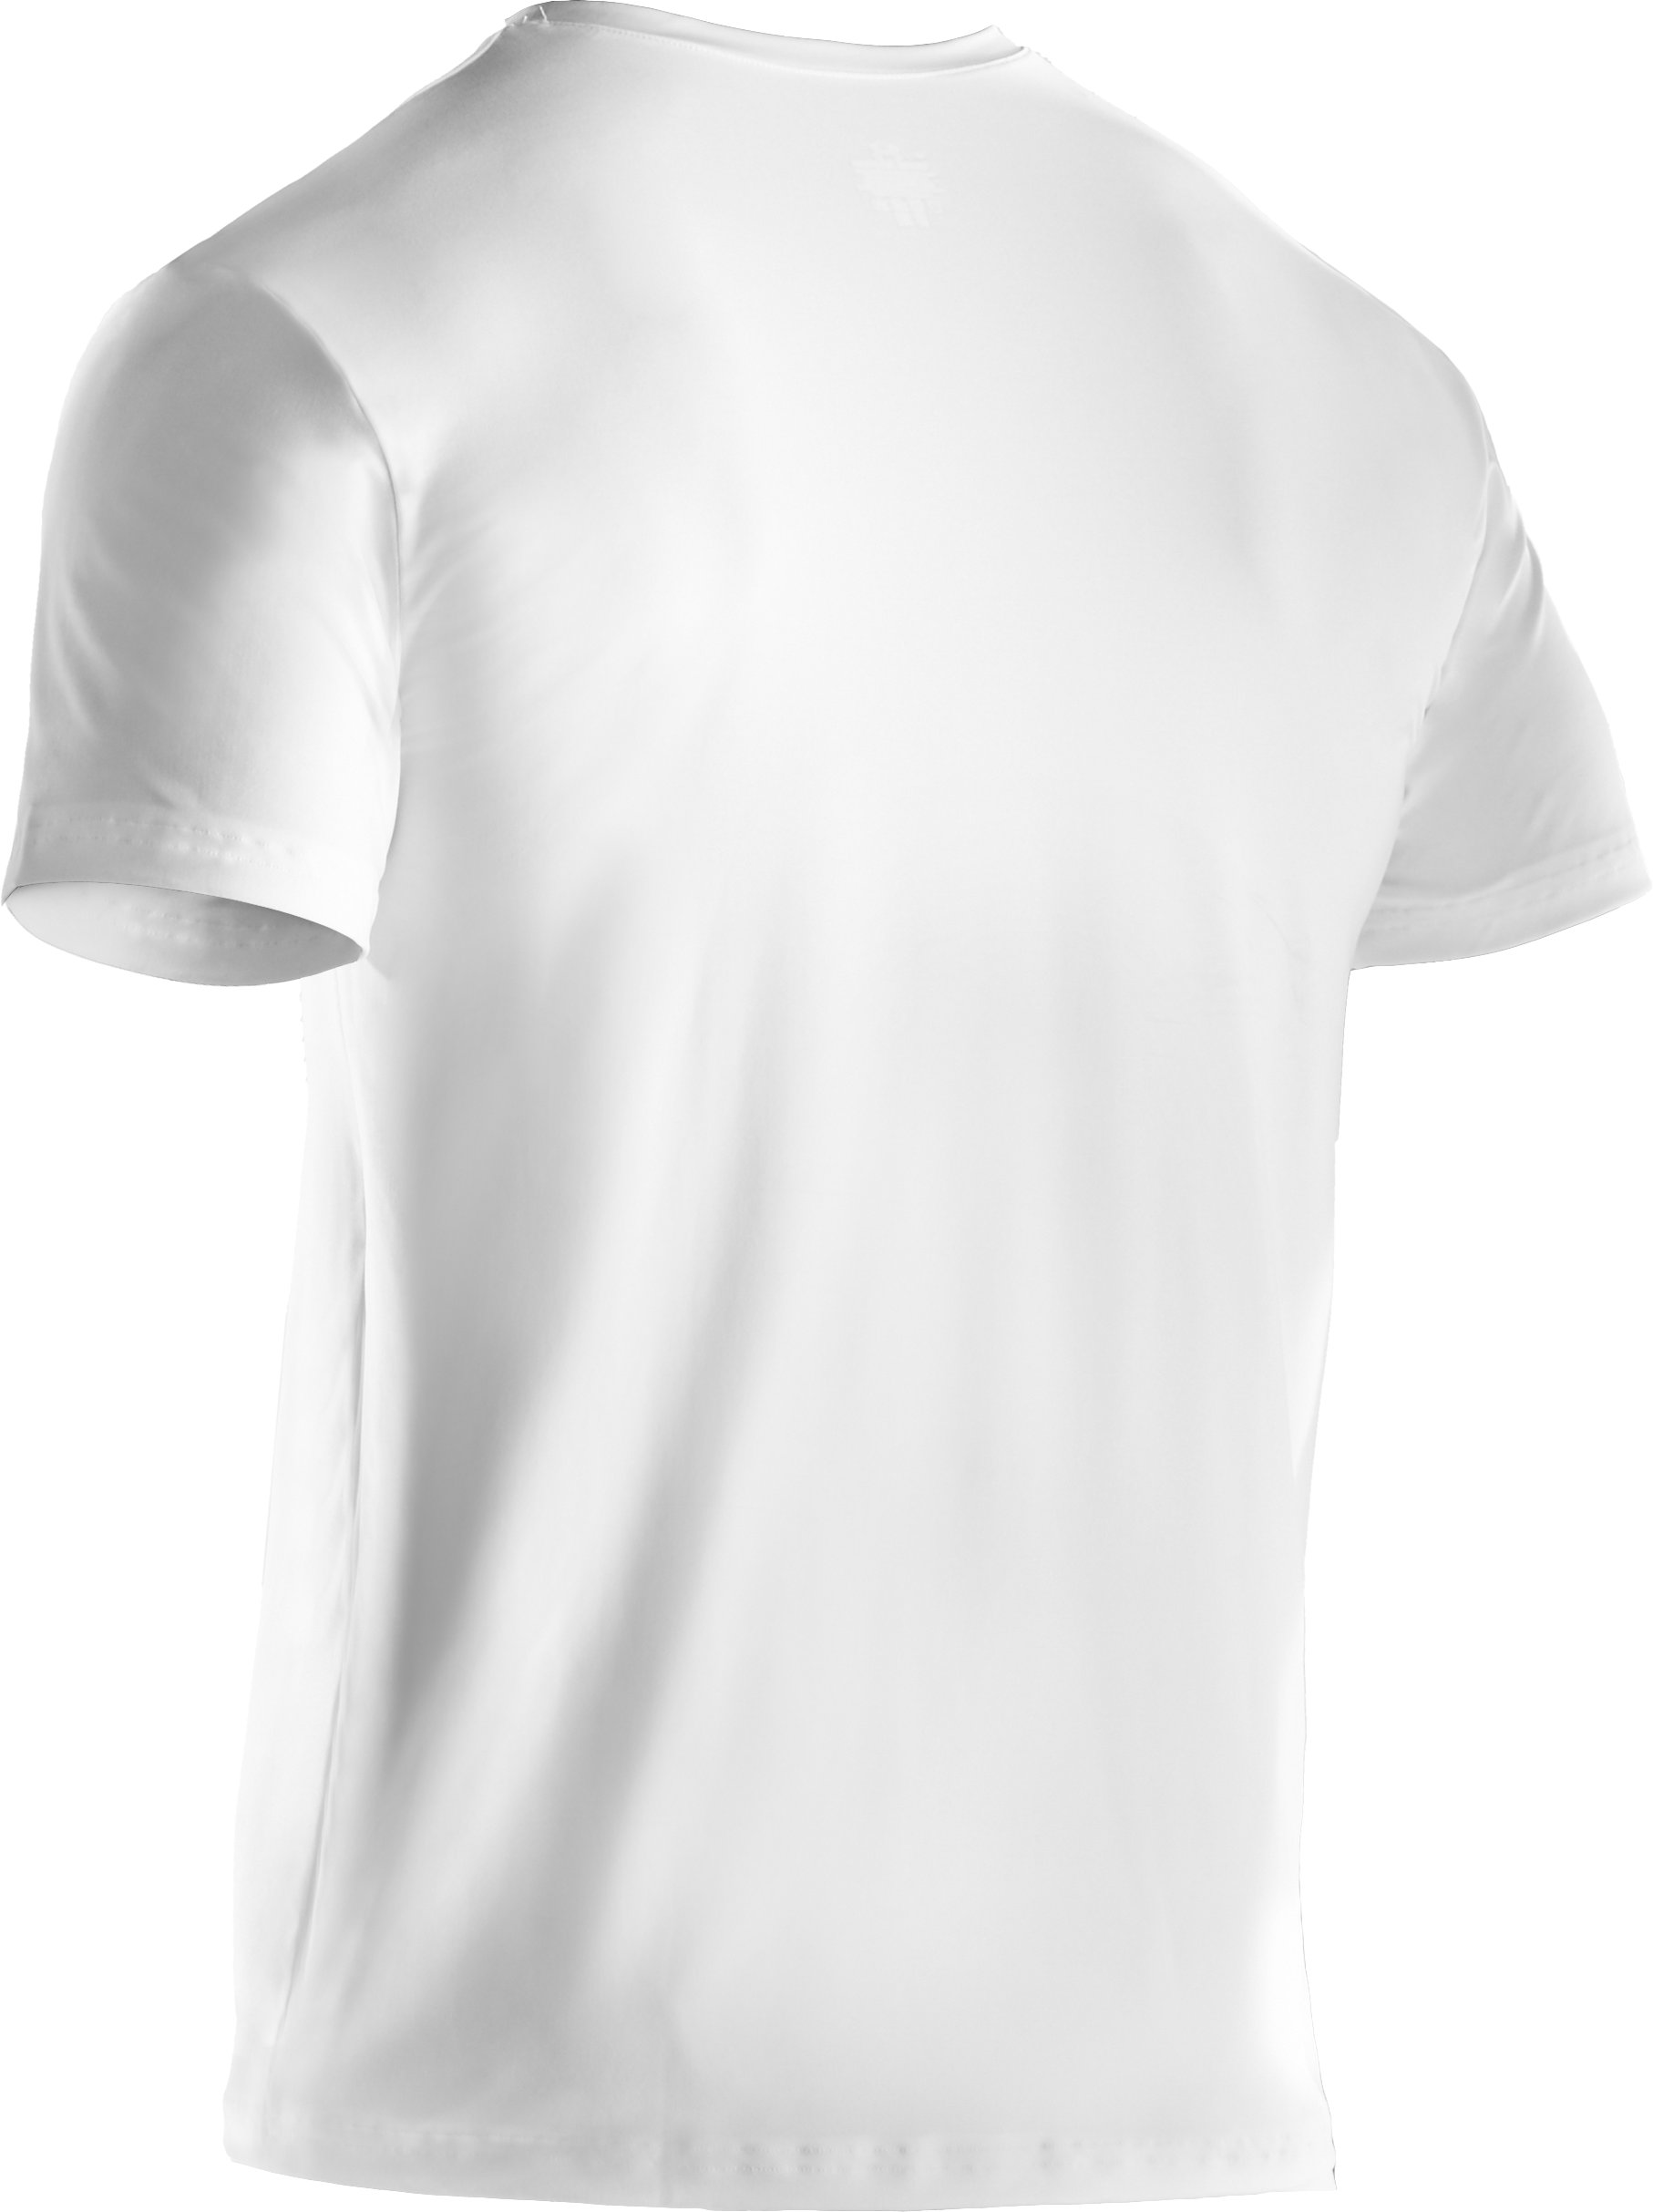 Men's The Original UA Fitted Crew Undershirt, White